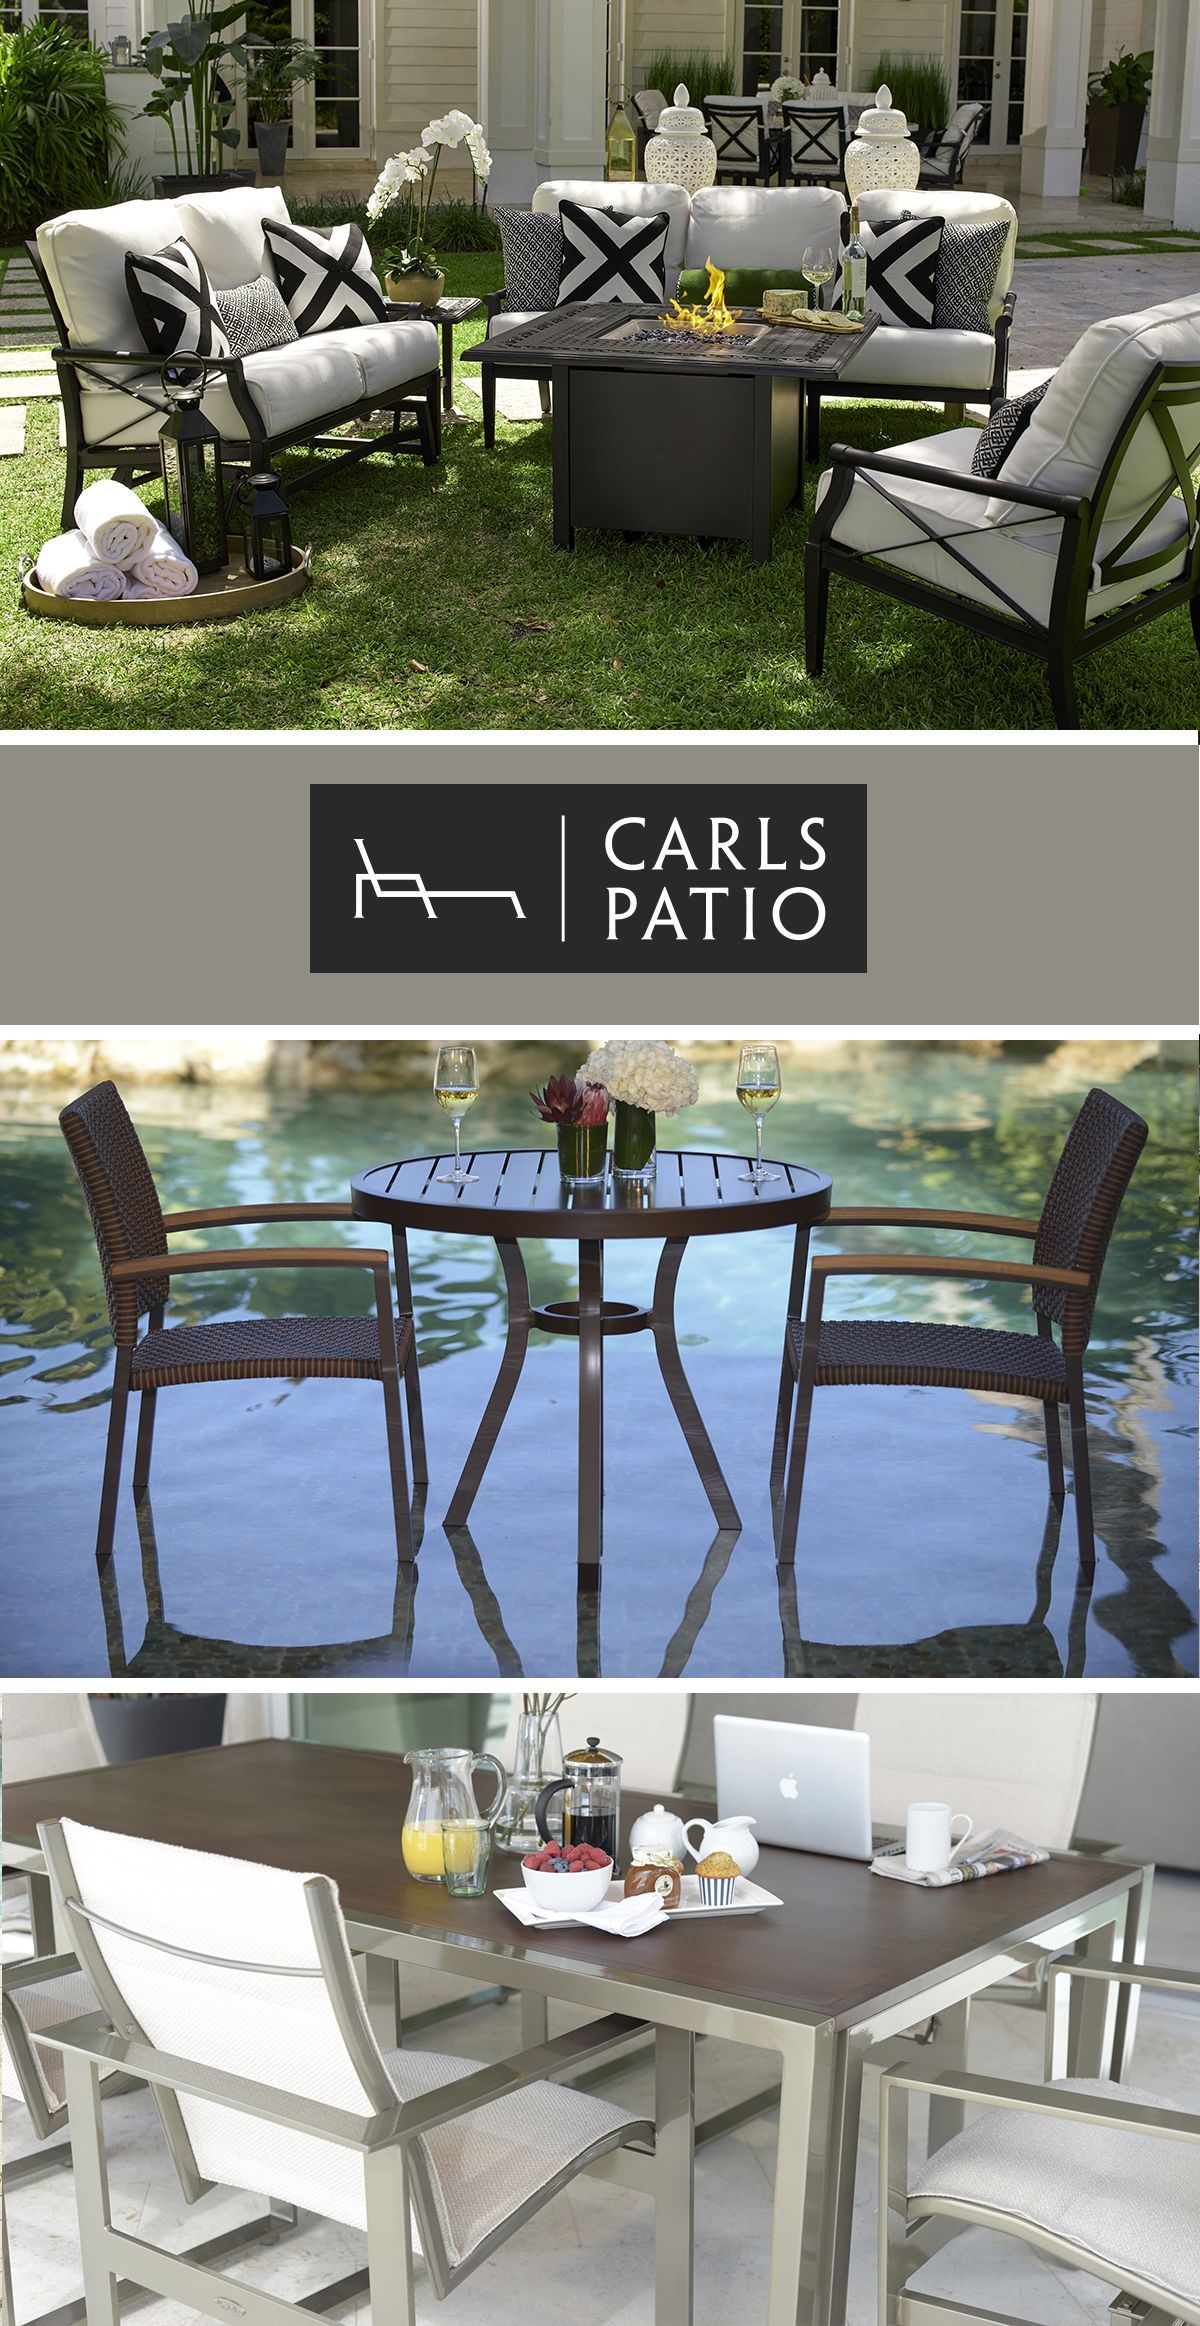 Stay Inspired With Carls Patio Outdoor Furniture This Summer Create Your Own Unique Living